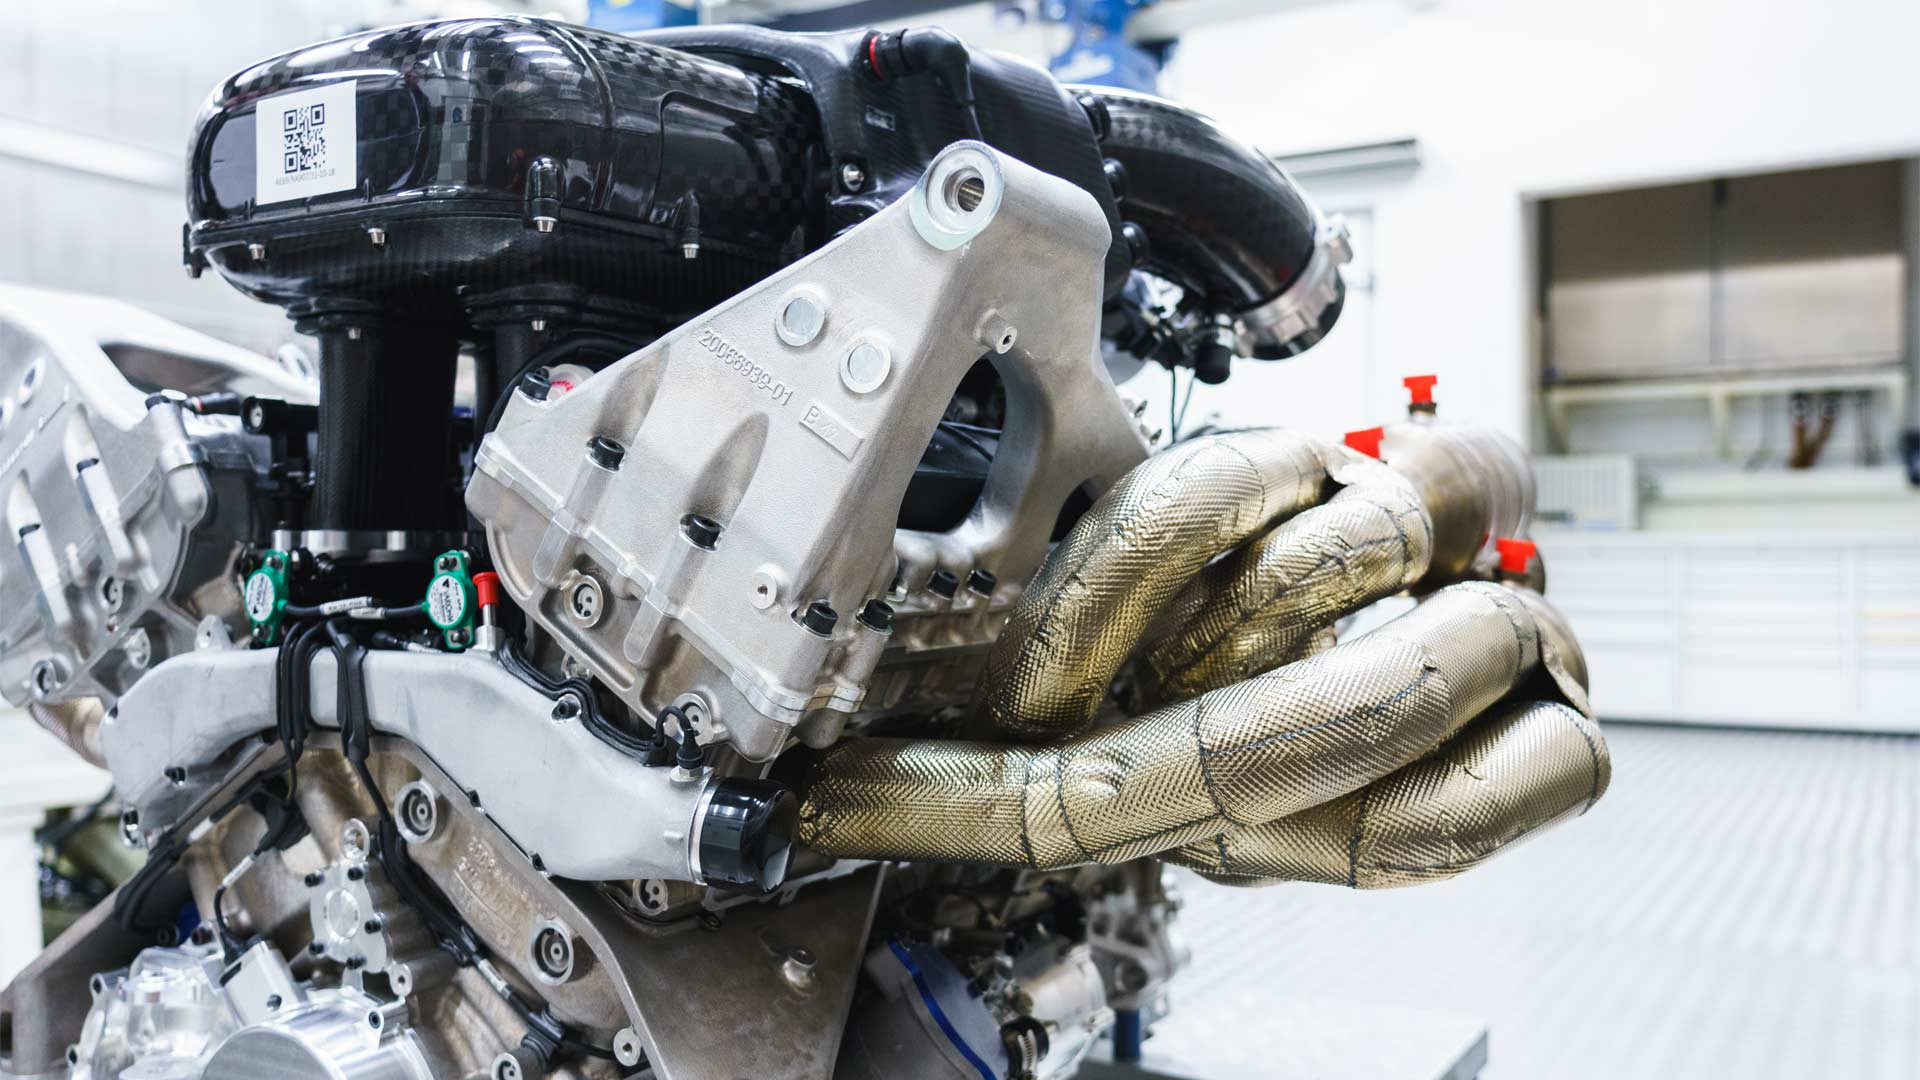 Aston-Martin-Valkyrie-V12-Engine-Cosworth_4